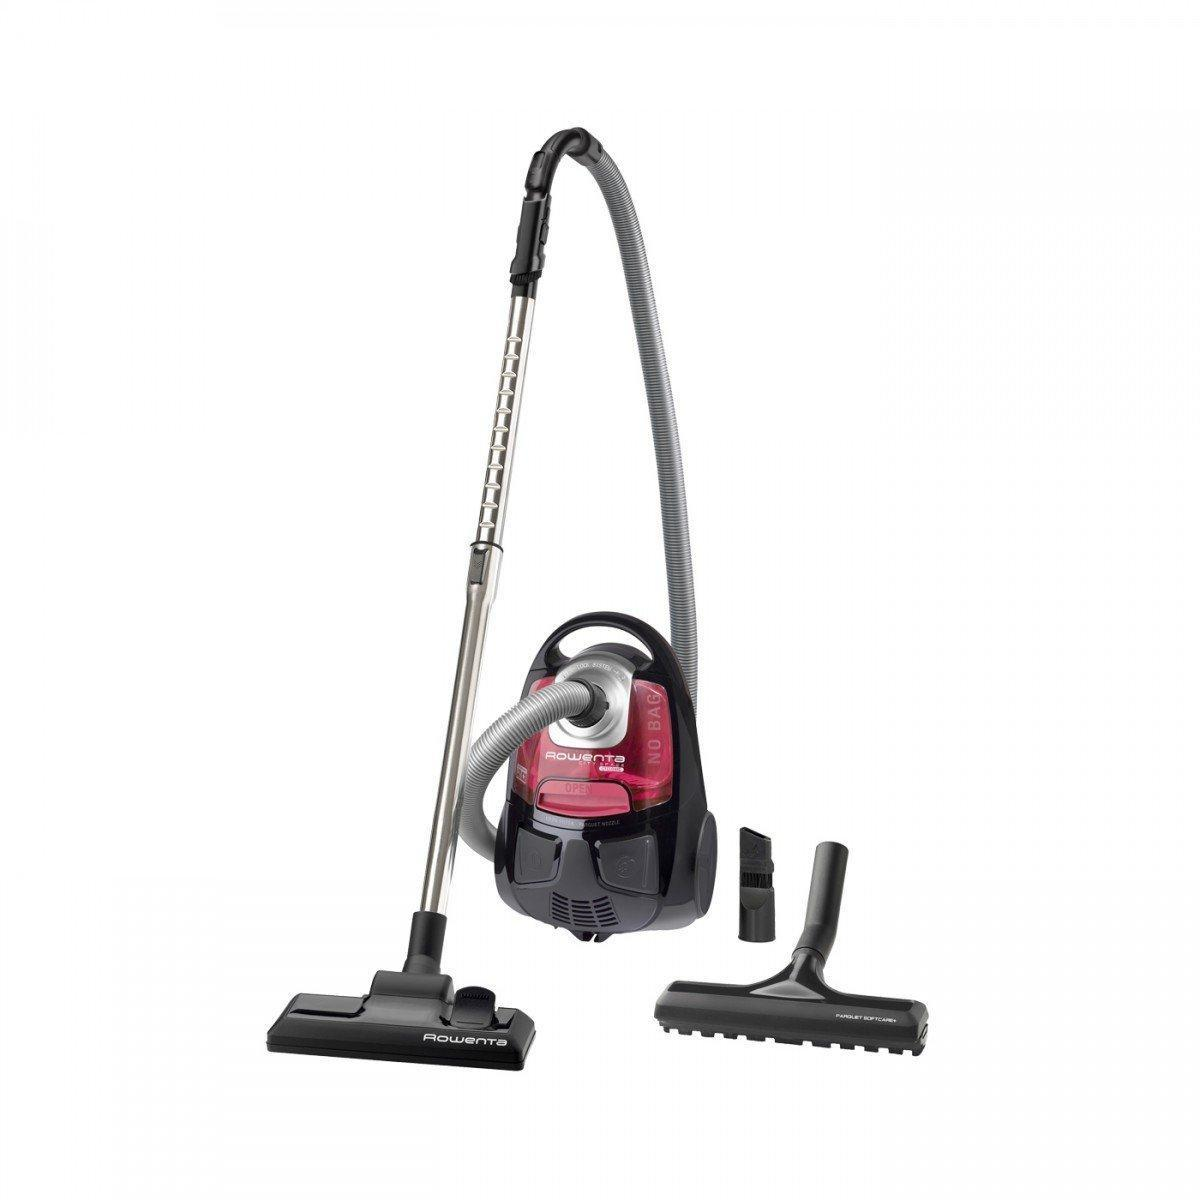 Rowenta - 2543WA - Aspirateur sans sac city space cyclonic